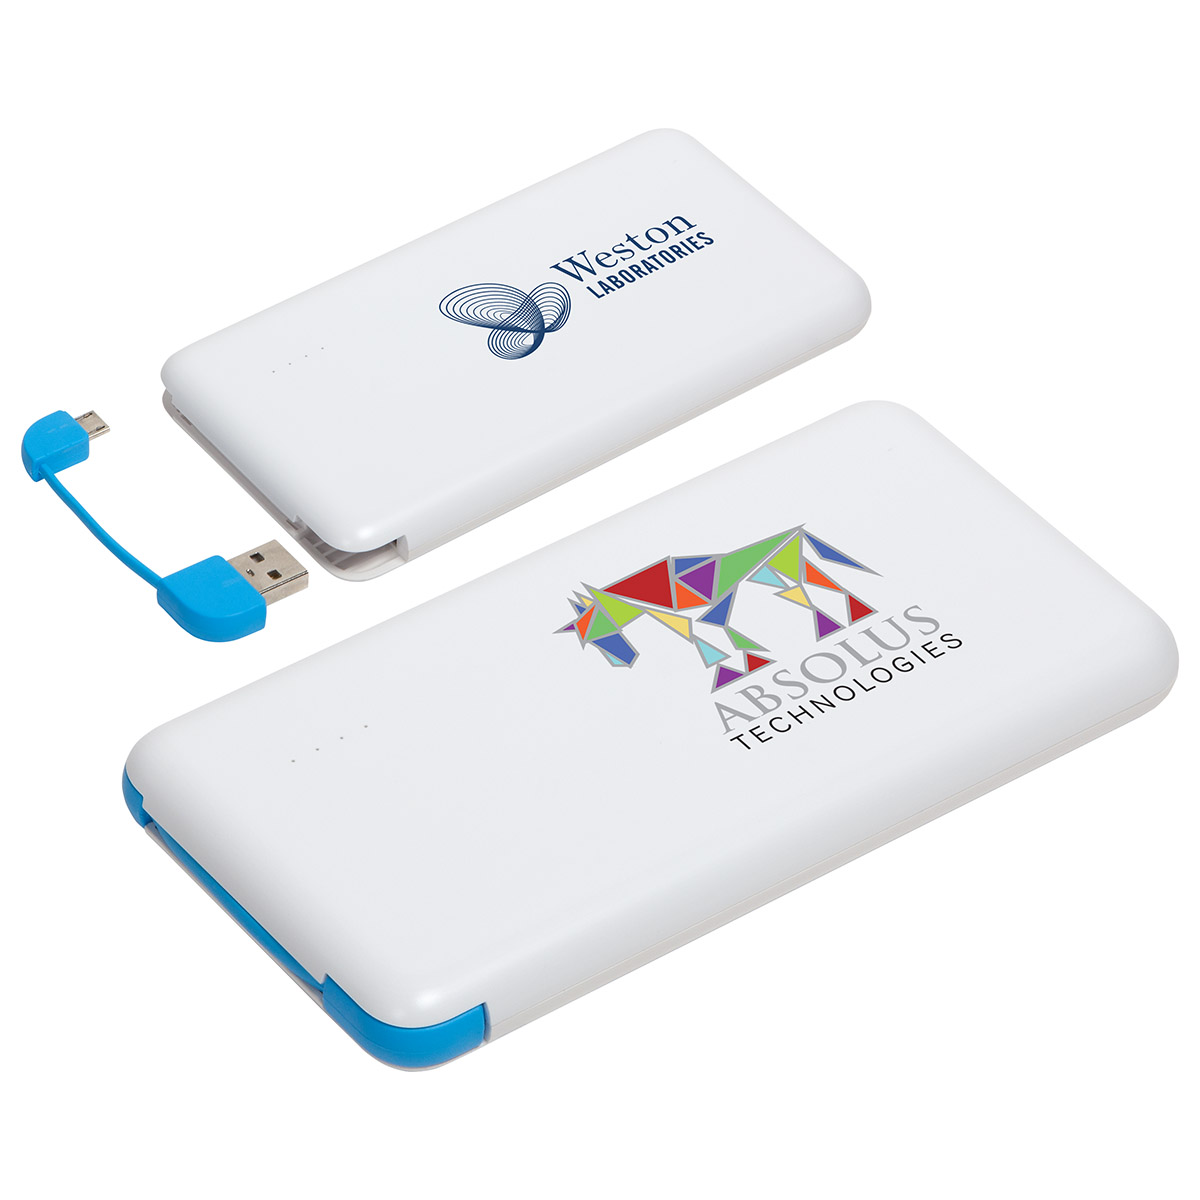 Econo Cable 8000mAh Power Bank, EPB-80F5 - 1 Colour Imprint